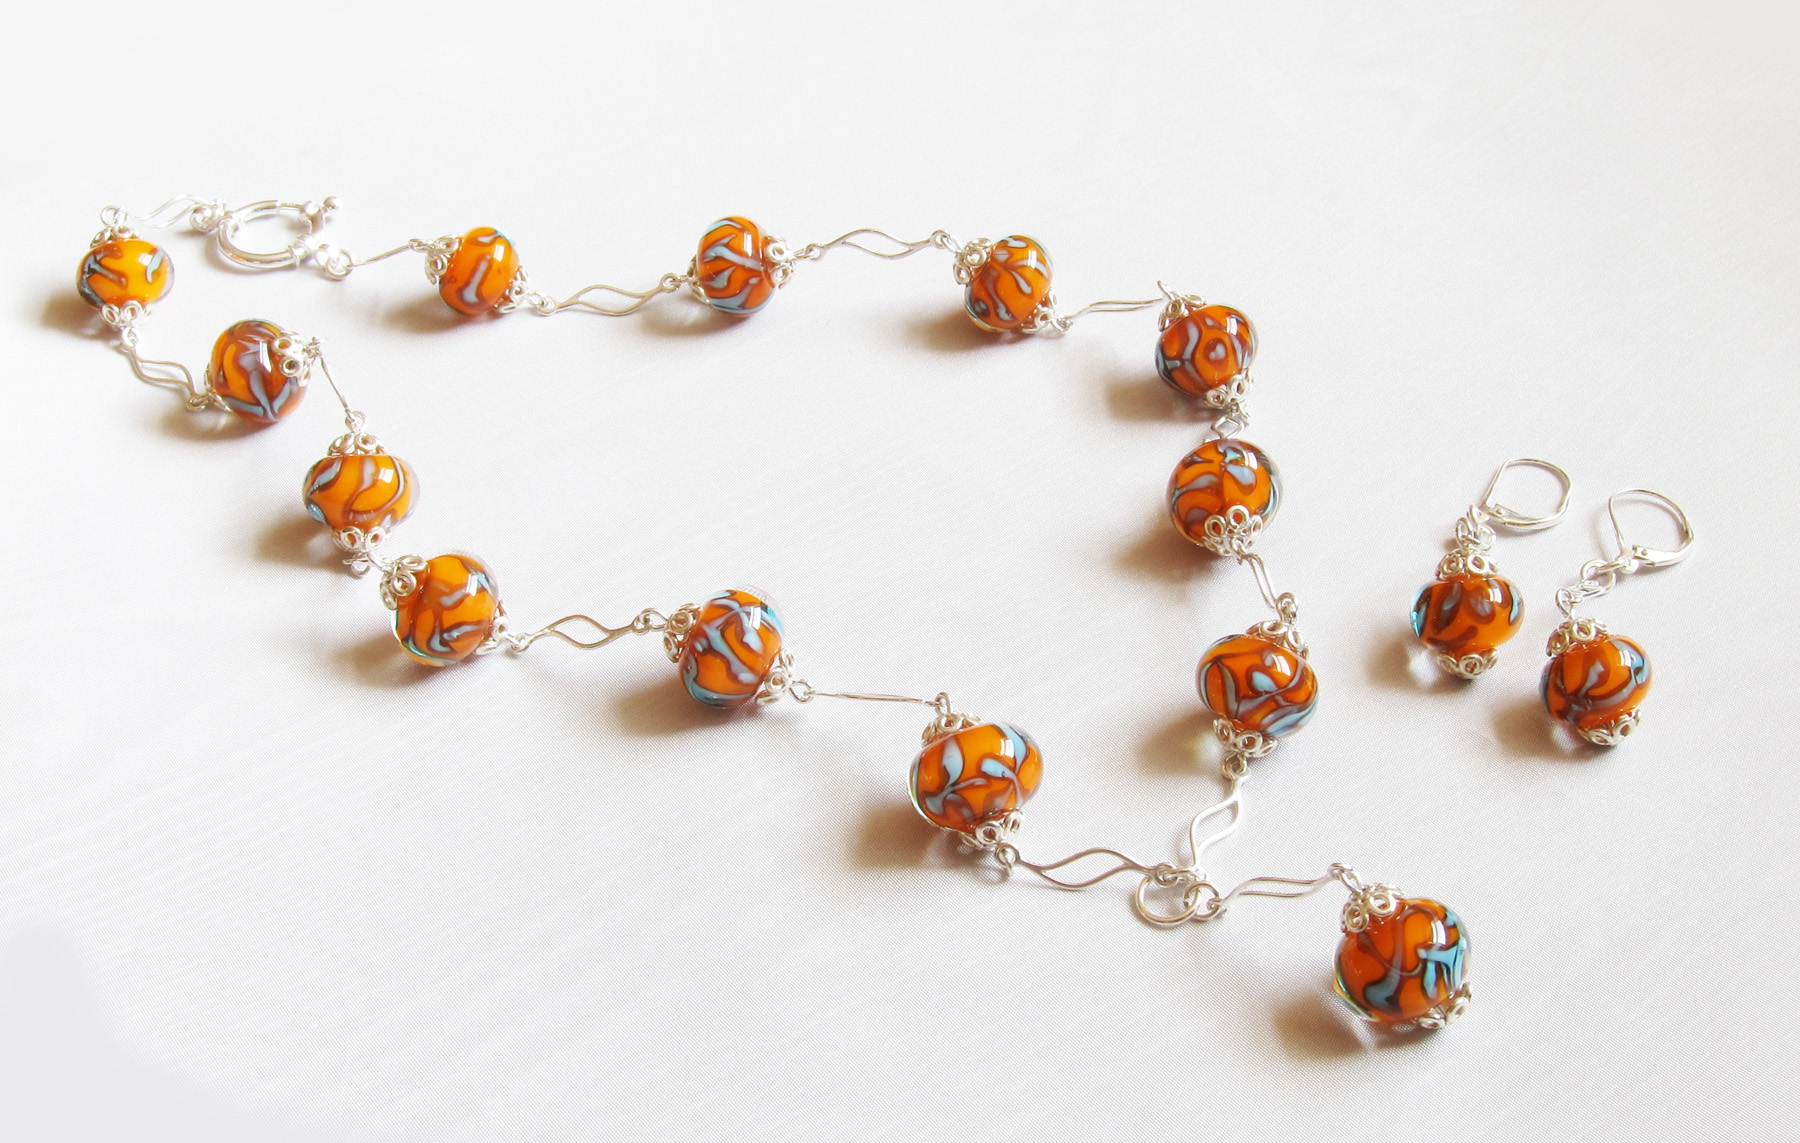 Orange Turquoise Encased Beads Wavy Silver Choker with Drop and Earrings